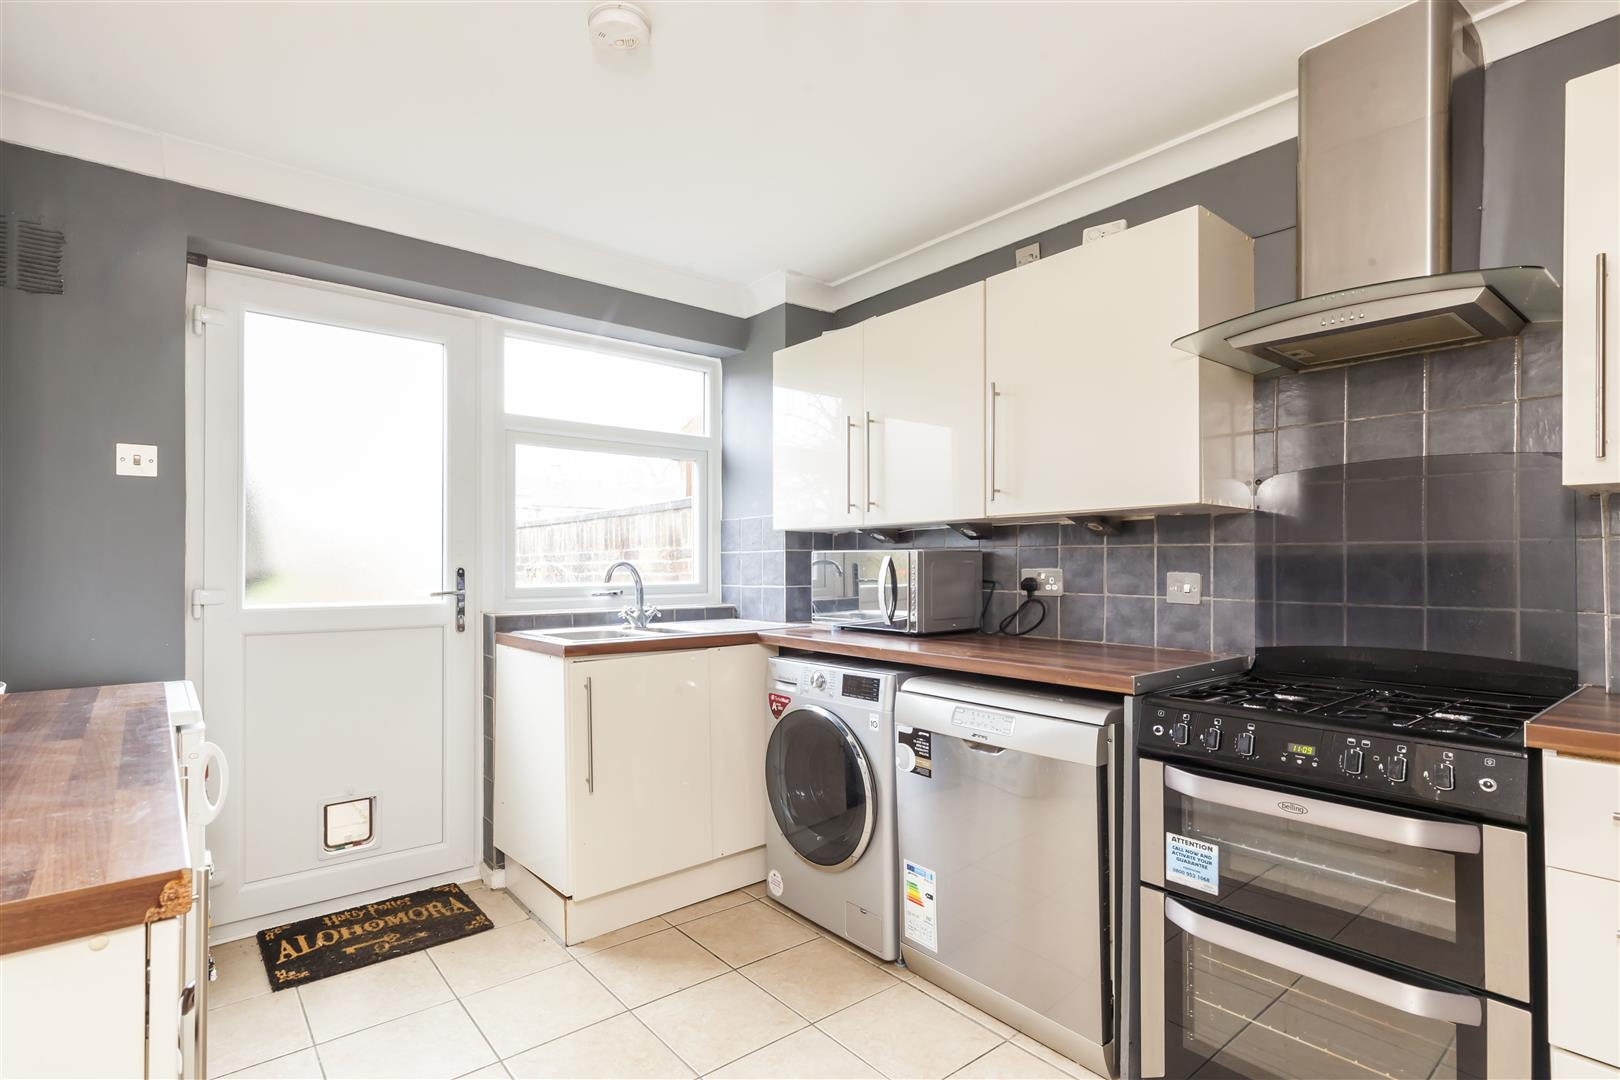 3 bed terraced-house for sale in Furnace Drive, Crawley  - Property Image 7